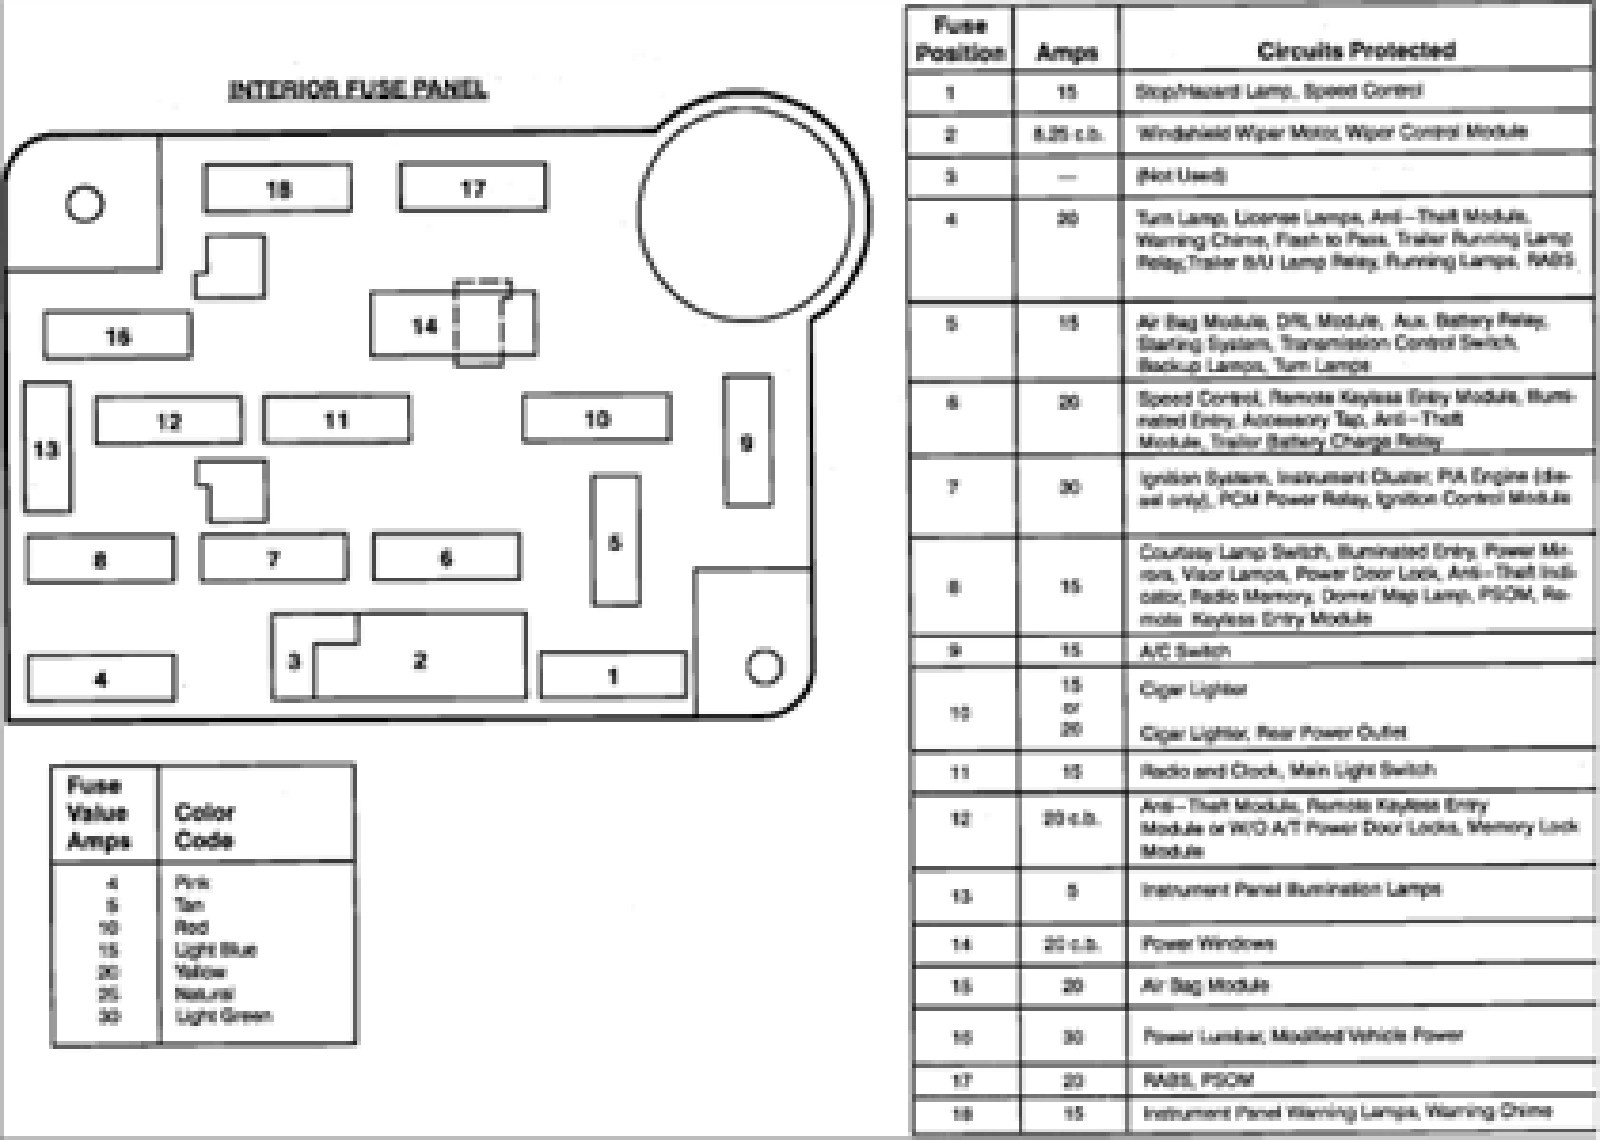 hight resolution of 1991 gmc fuse box diagram completed wiring diagrams chevrolet fuse box diagram 1991 gmc fuse box diagram